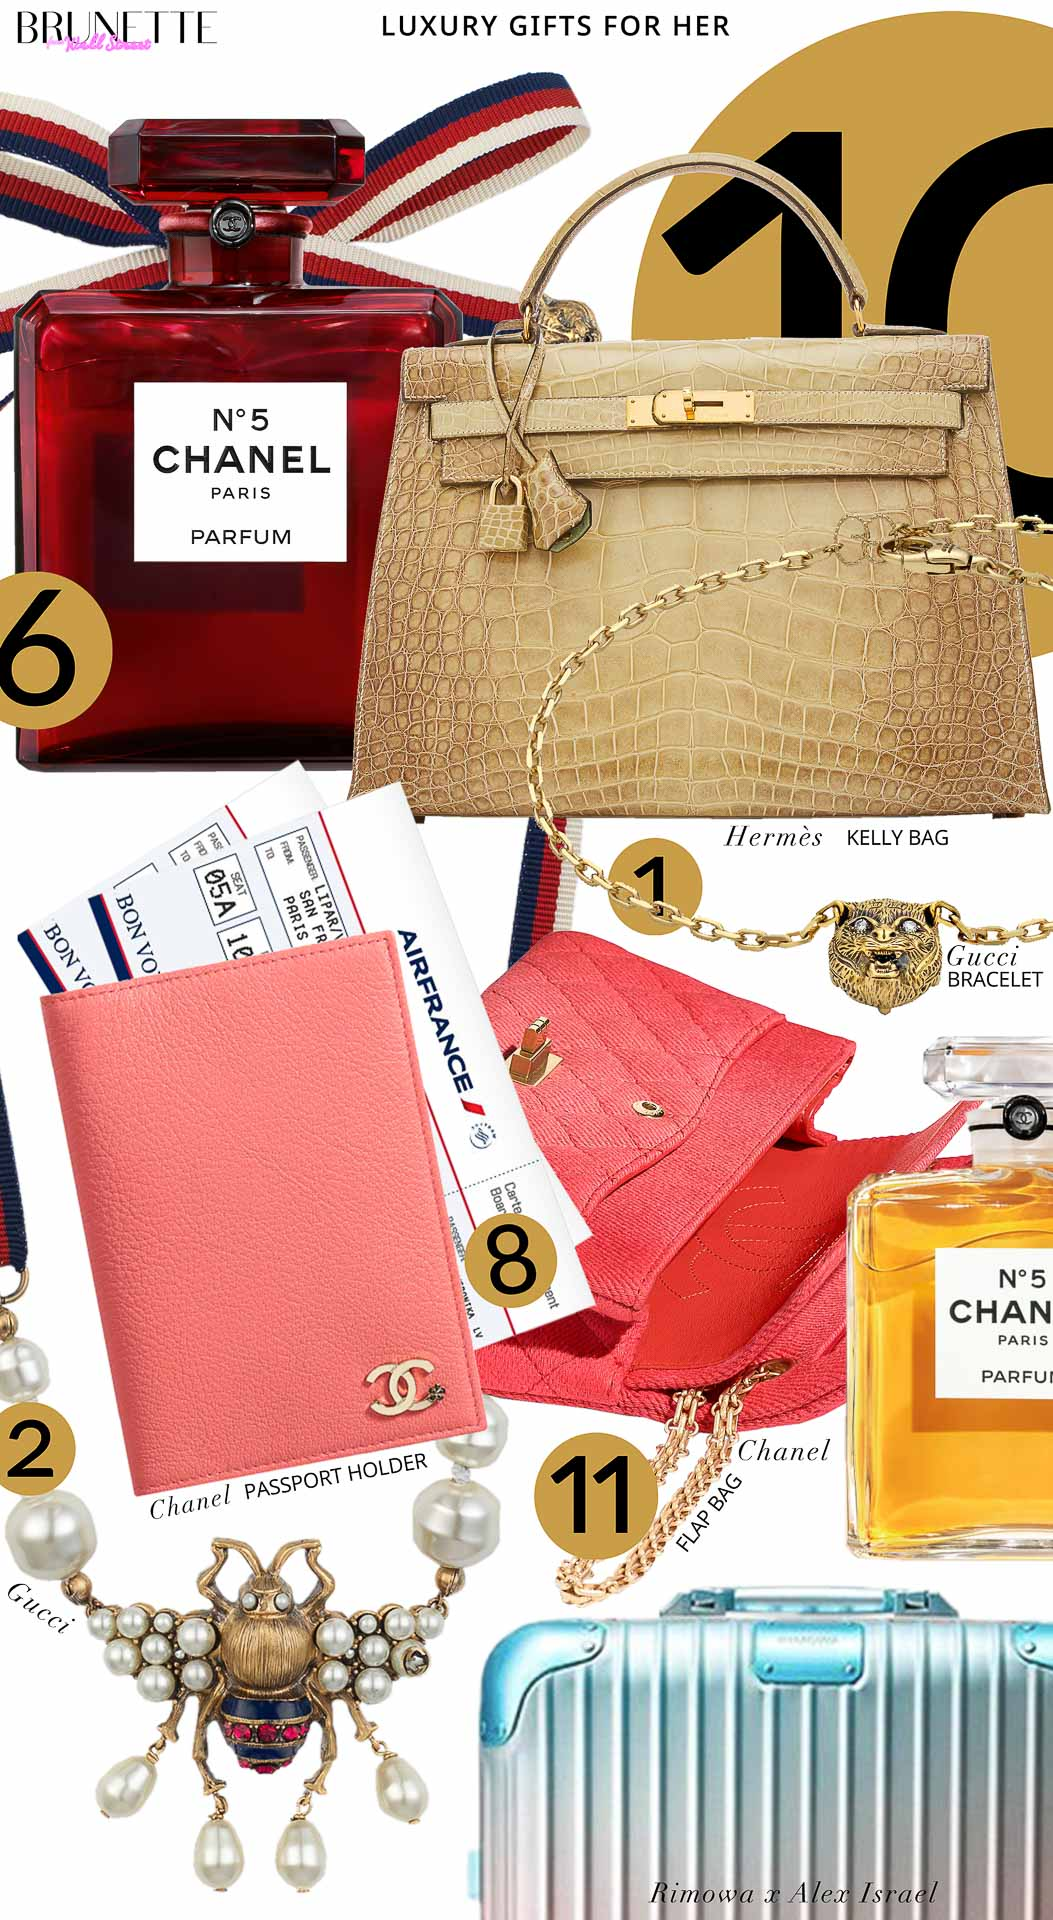 Brunette from Wall Street Luxury gifts for her Rimowa x Alex Israel trunk Chanel passport holder plane tickets to Paris Chanel coral flap bag Chanel No5 elexir perfume Hermes Kelly bag neutrals Gucci bee necklace